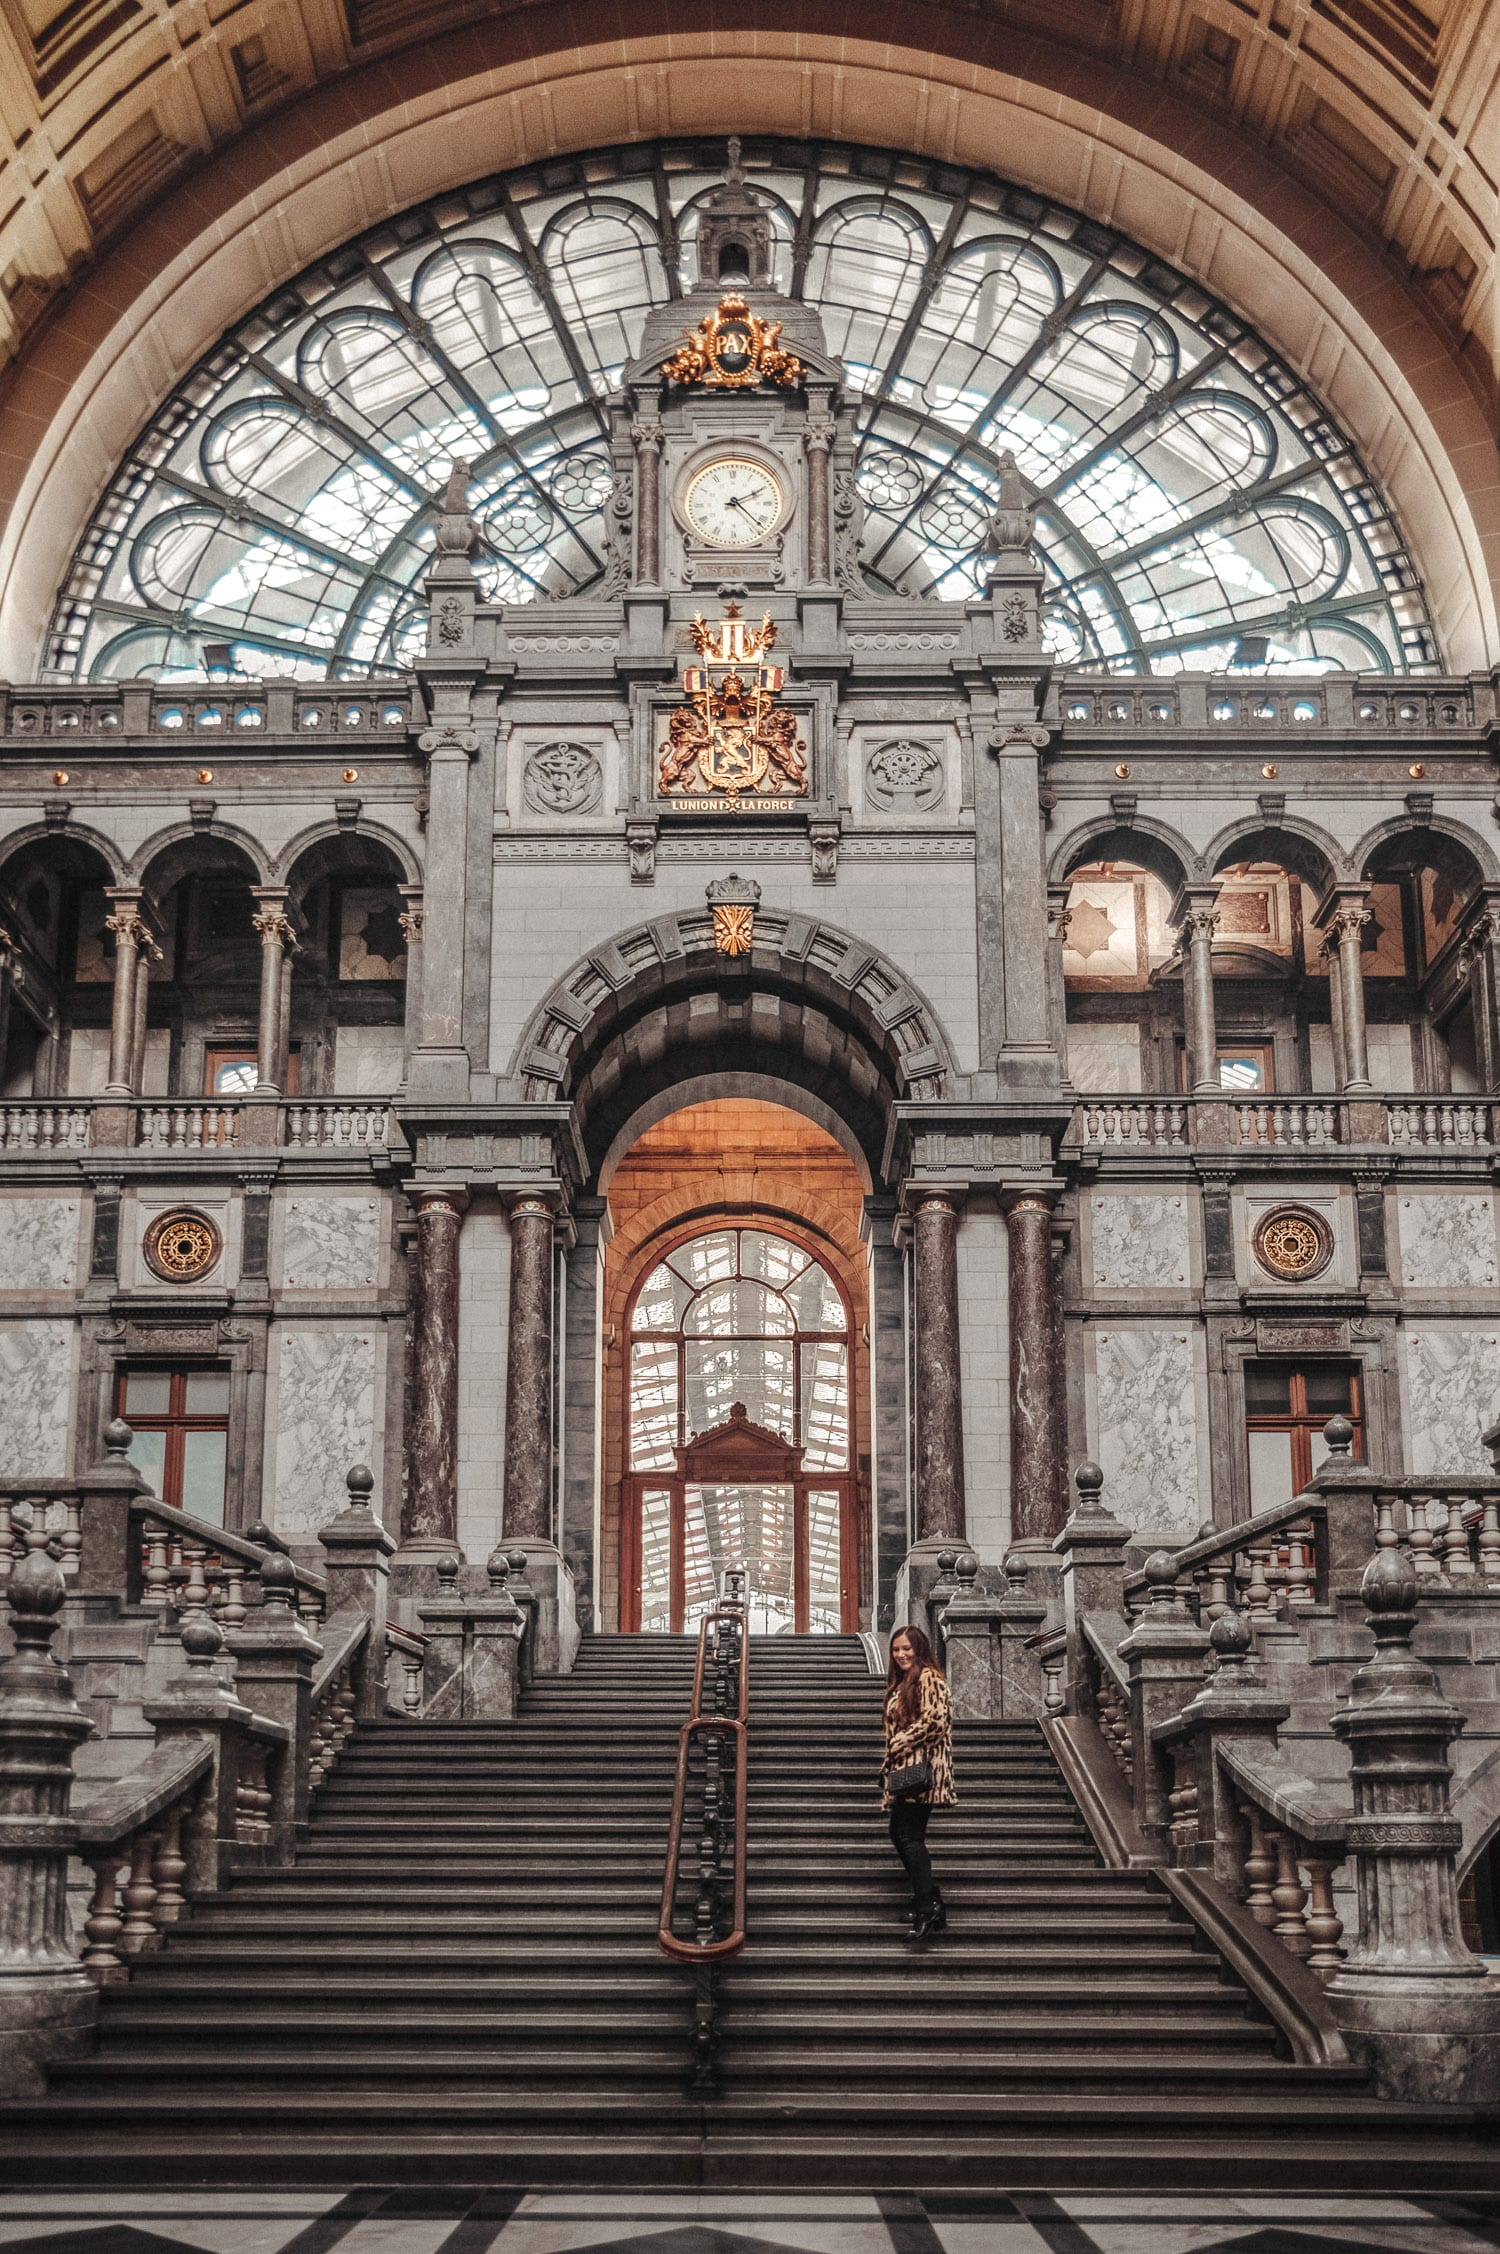 Antwerpen-Centraal Railway Station | Things to Do in Antwerp, Belgium